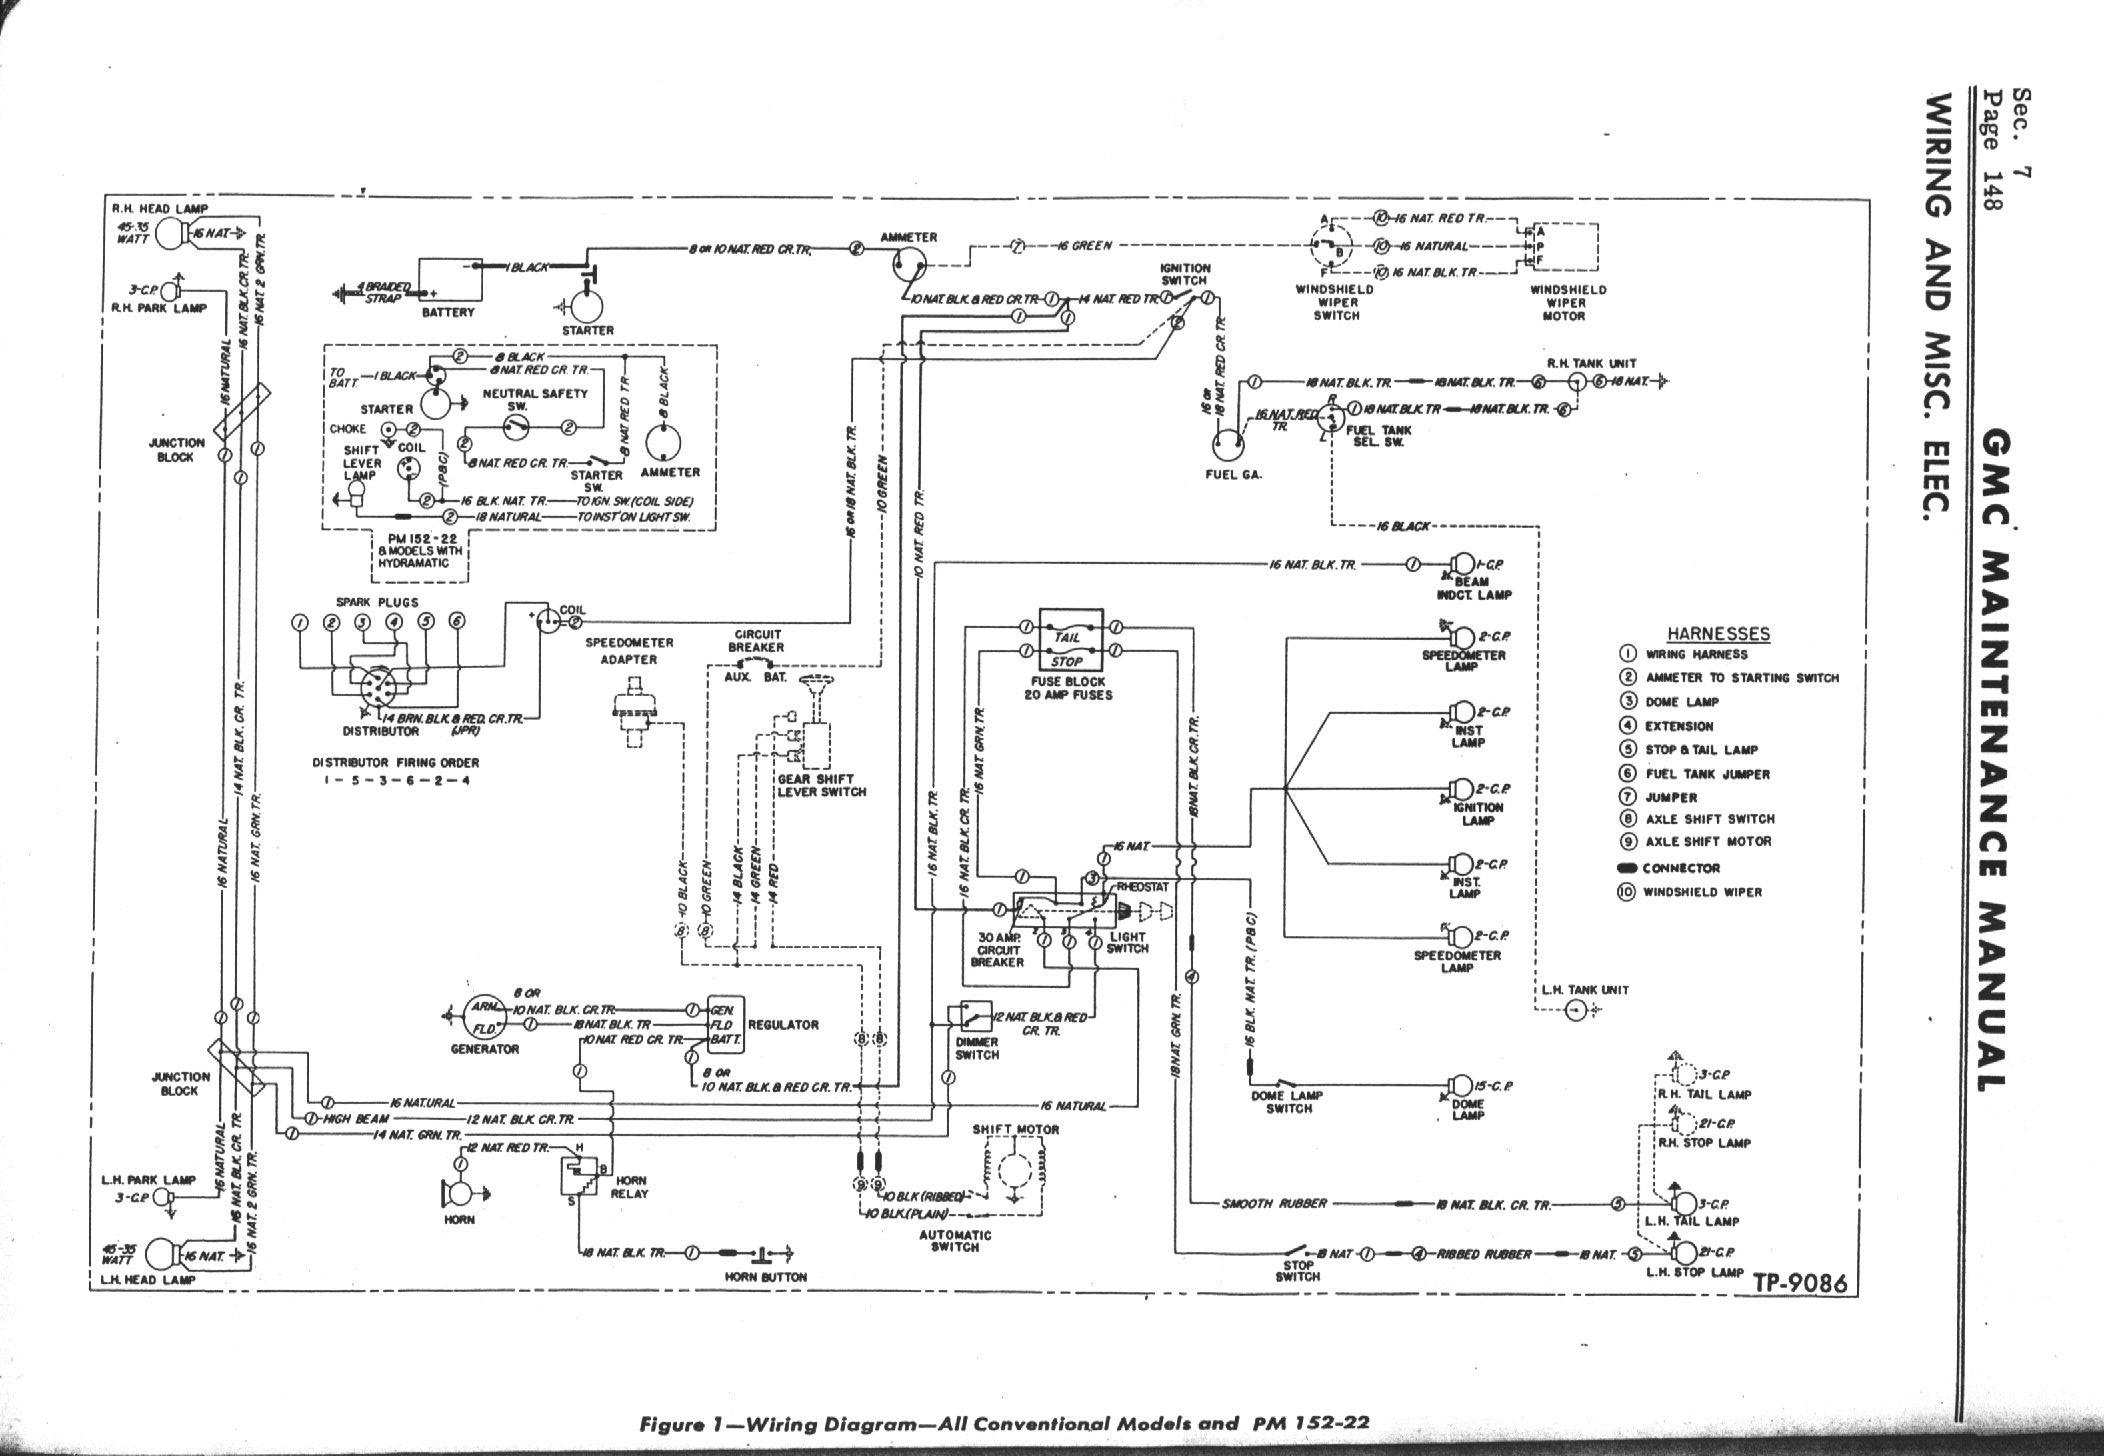 Rolls Royce Wiring Diagram 1987 31 Images 1947 Chrysler Gmcwire Allmodels 1950 Gmc Number 1 On Distributer Cap The Present 1995 At